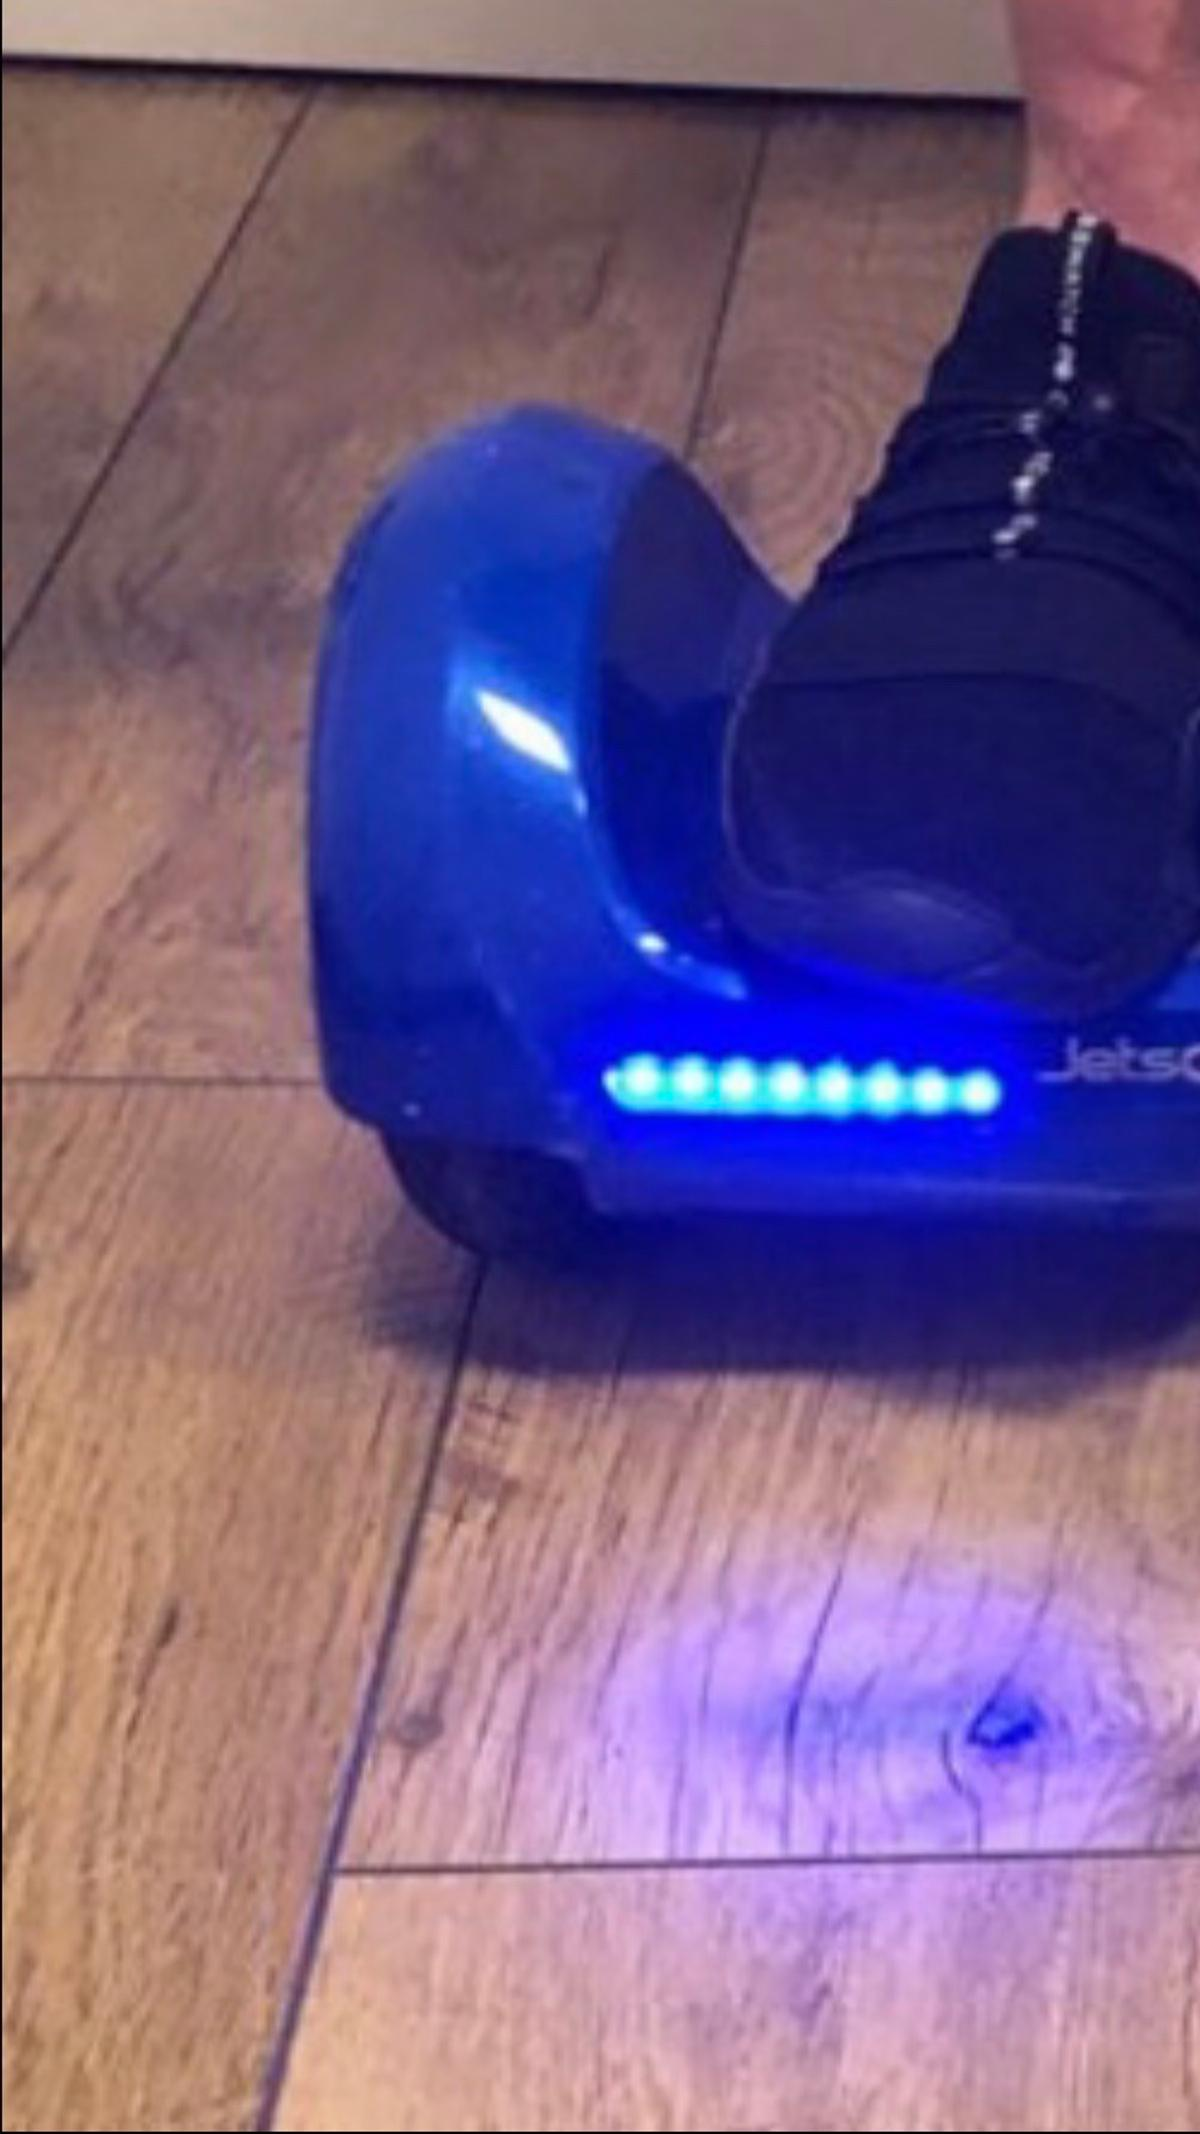 V6 Active Balance Hoverboard, used on a handful of occasions but no longer used. Excellent condition, used a handful of times, two scuffs on front as shown, full working order with instructions & box.